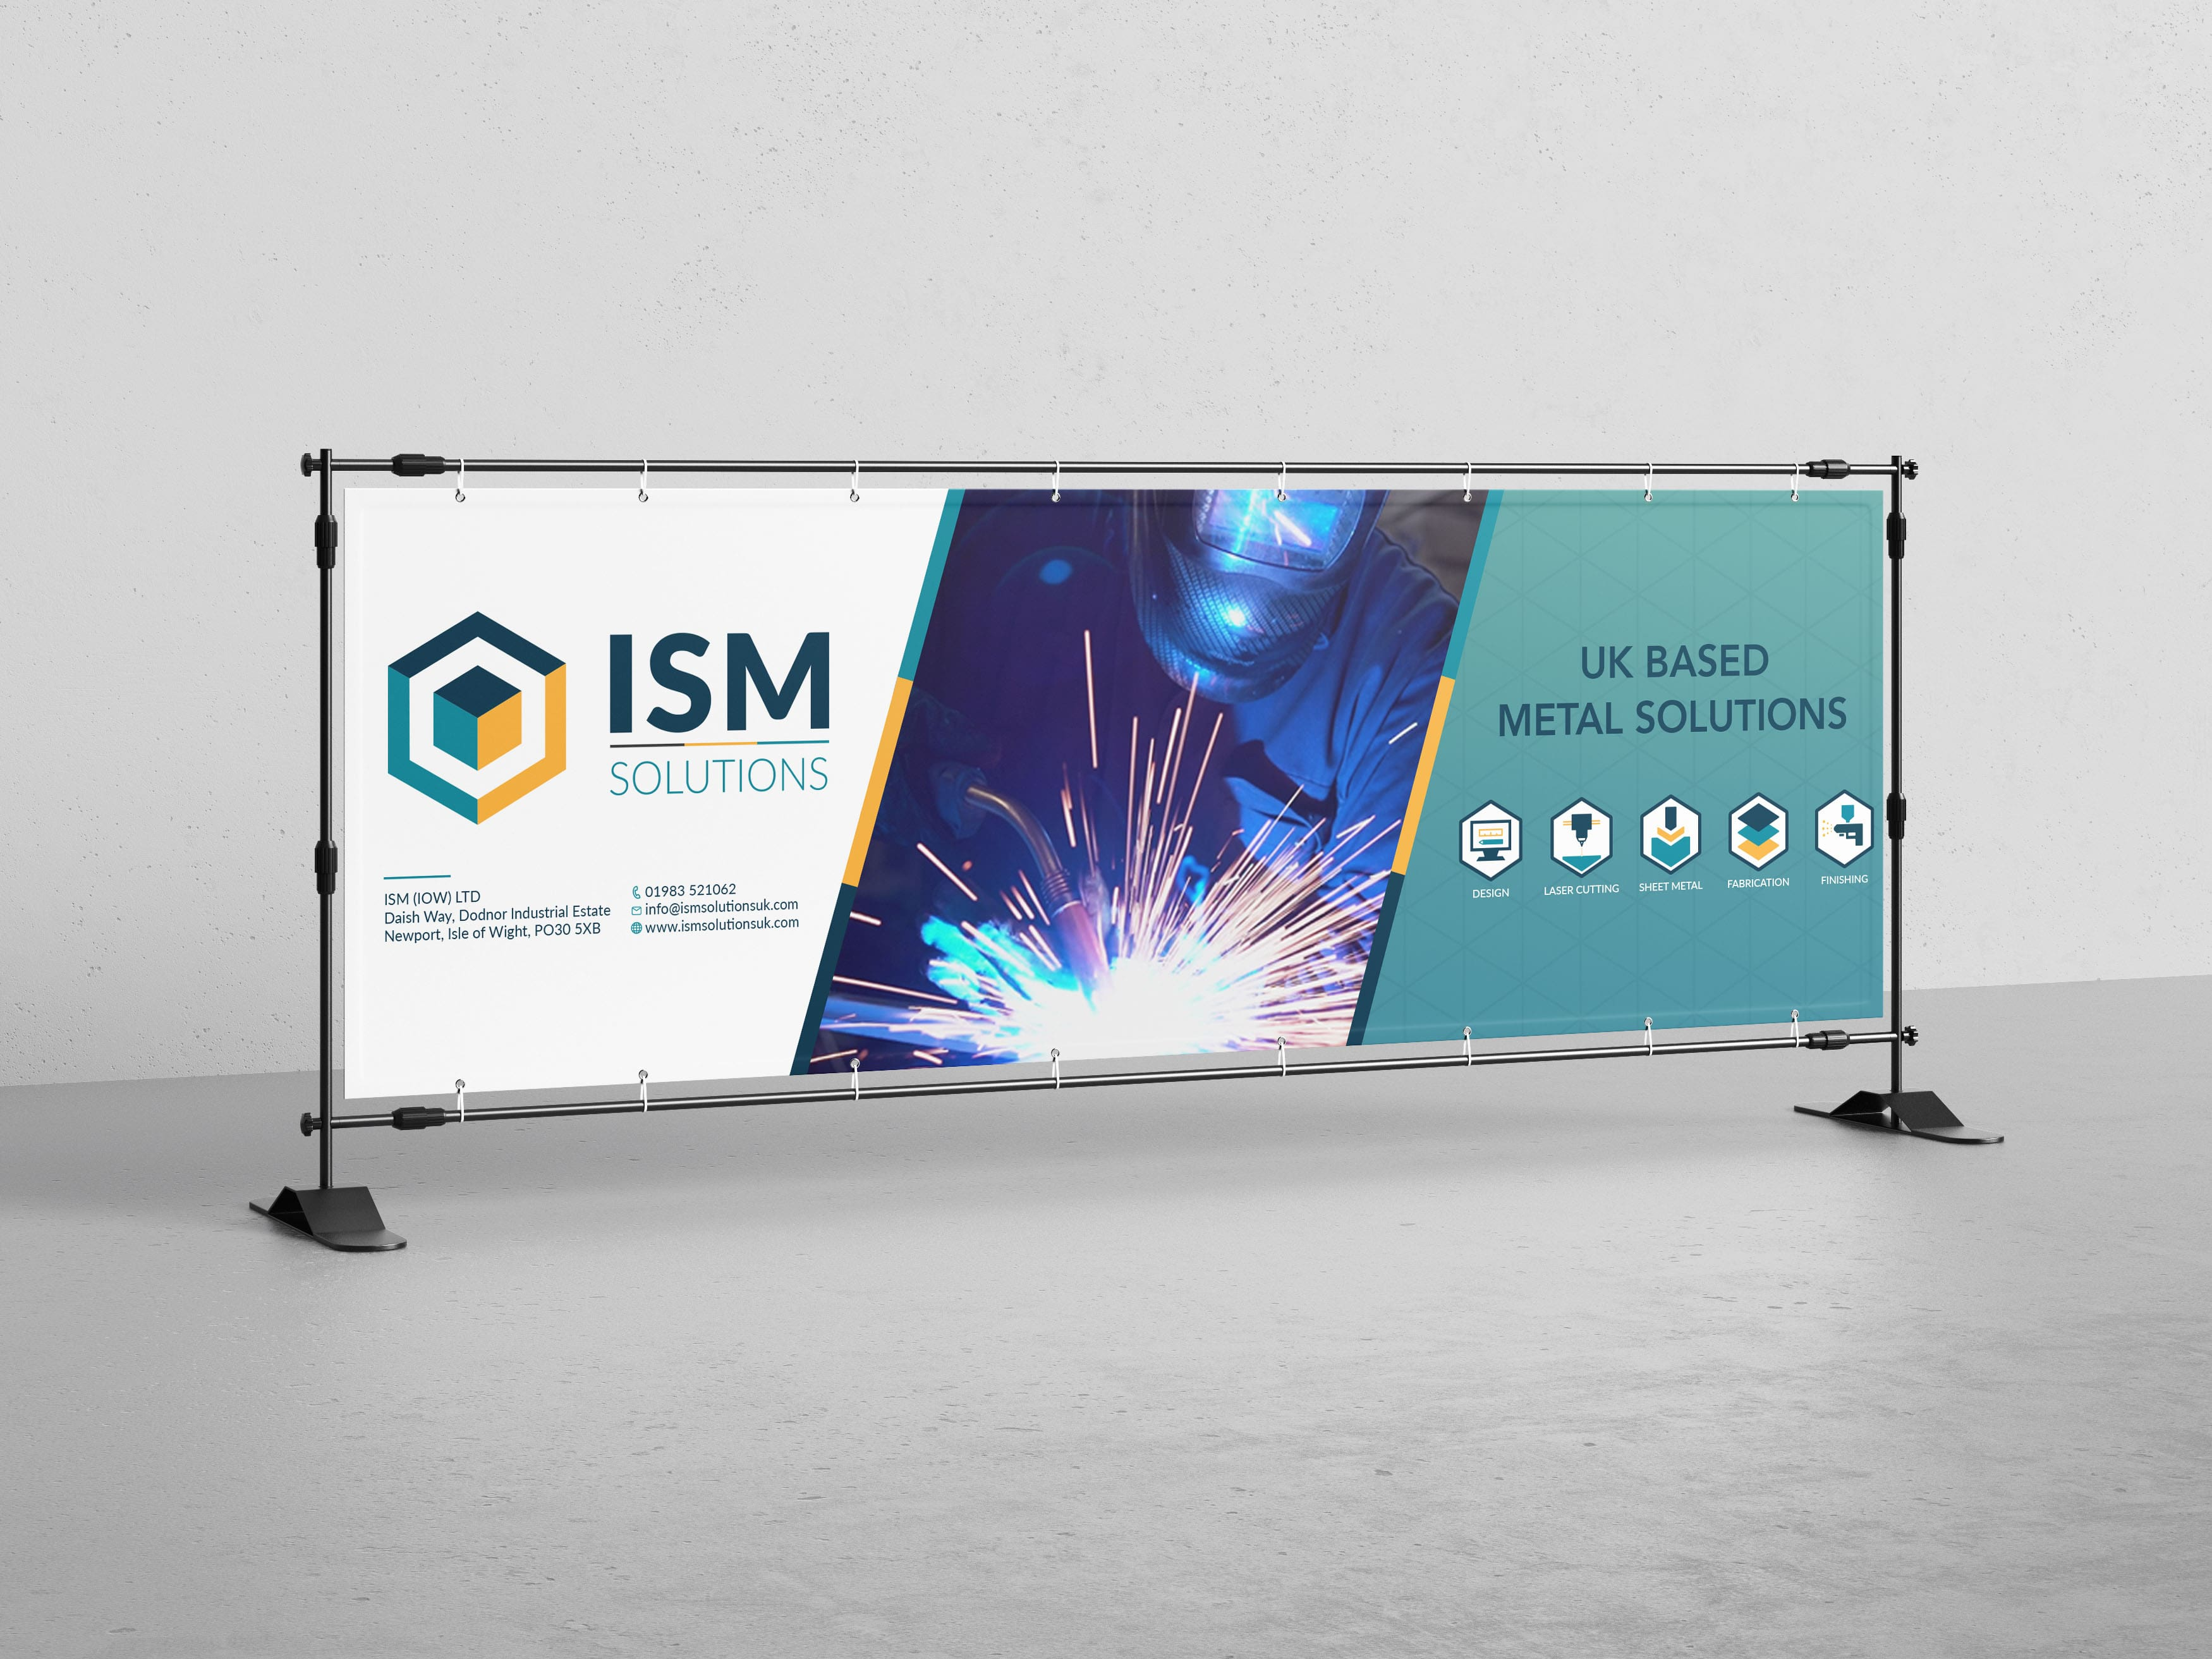 Signage of ISM solutions